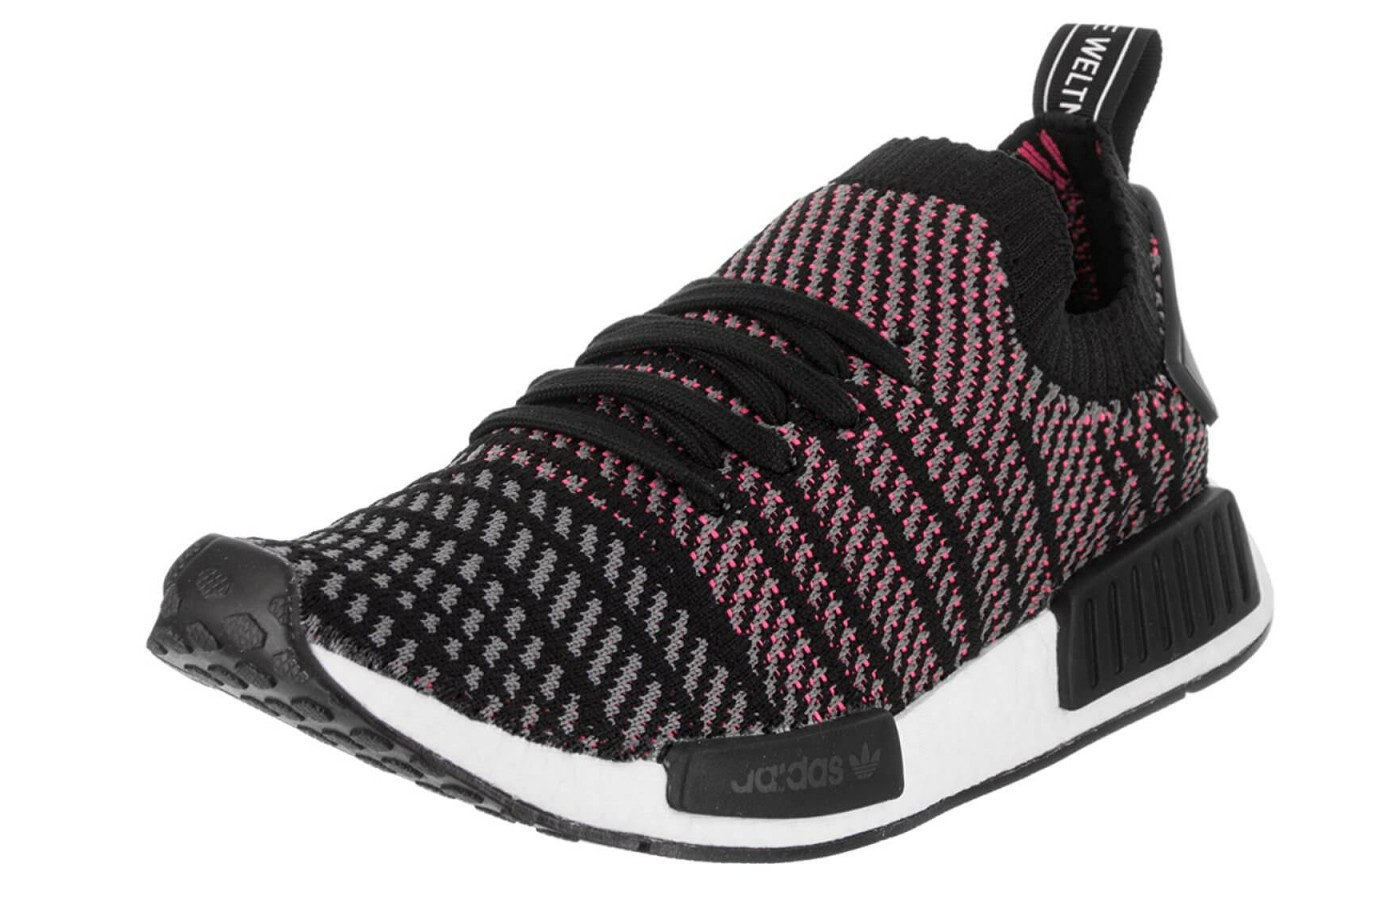 9b21d52a6 The Adidas NMD R1 Stlt Primeknit features a Primeknit upper ...